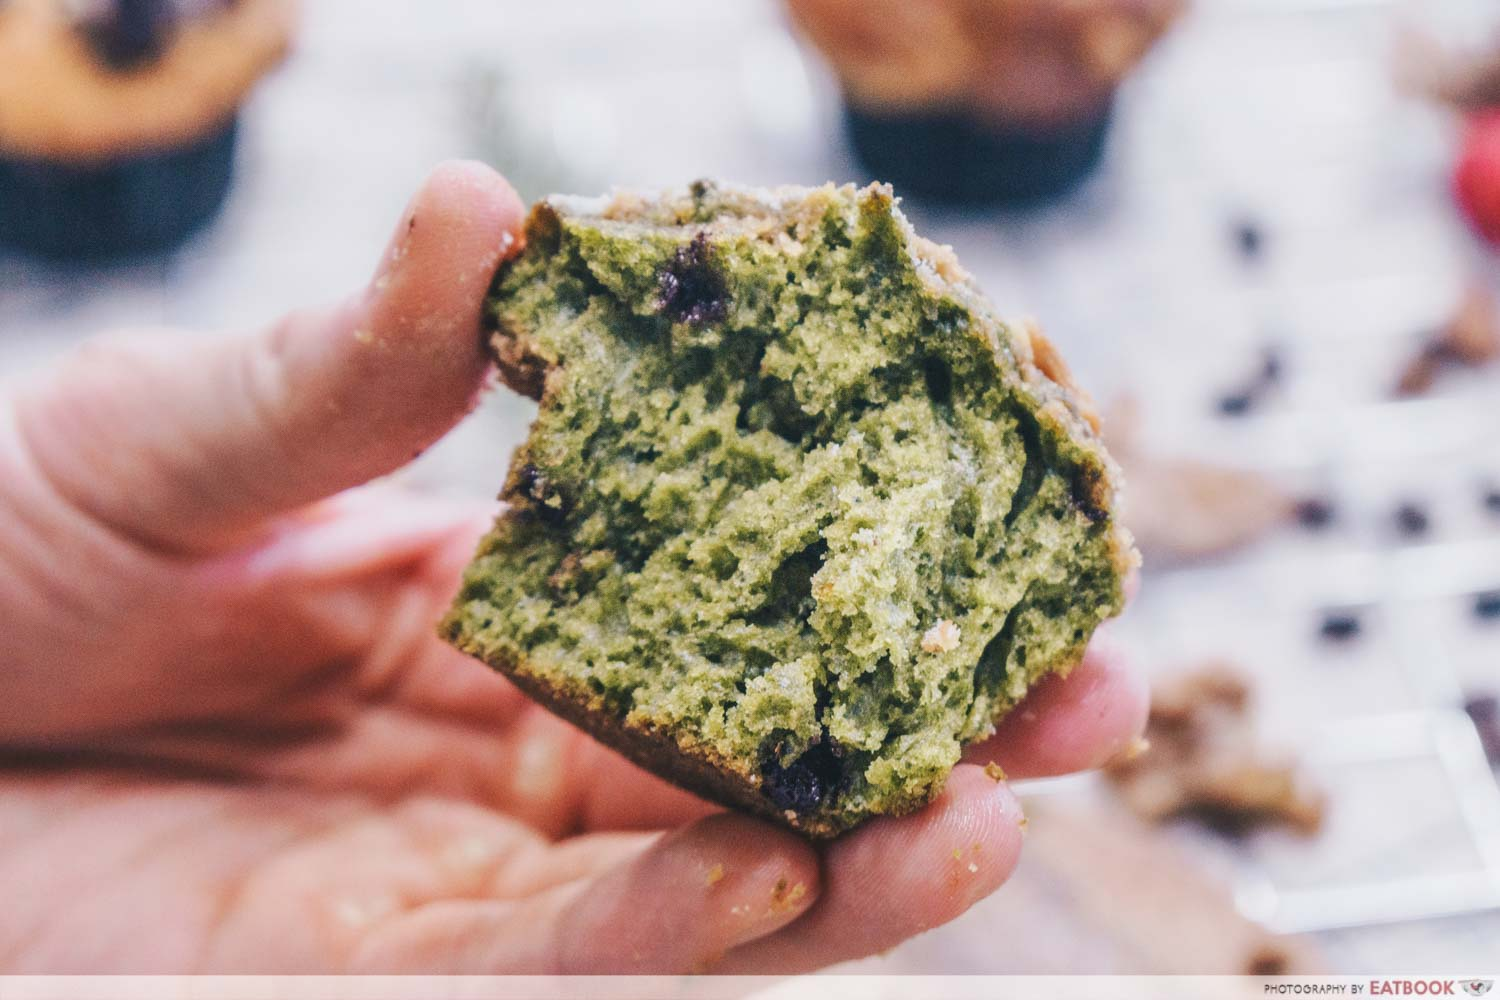 AJ Delights - Cross section of Green Tea Monster muffin